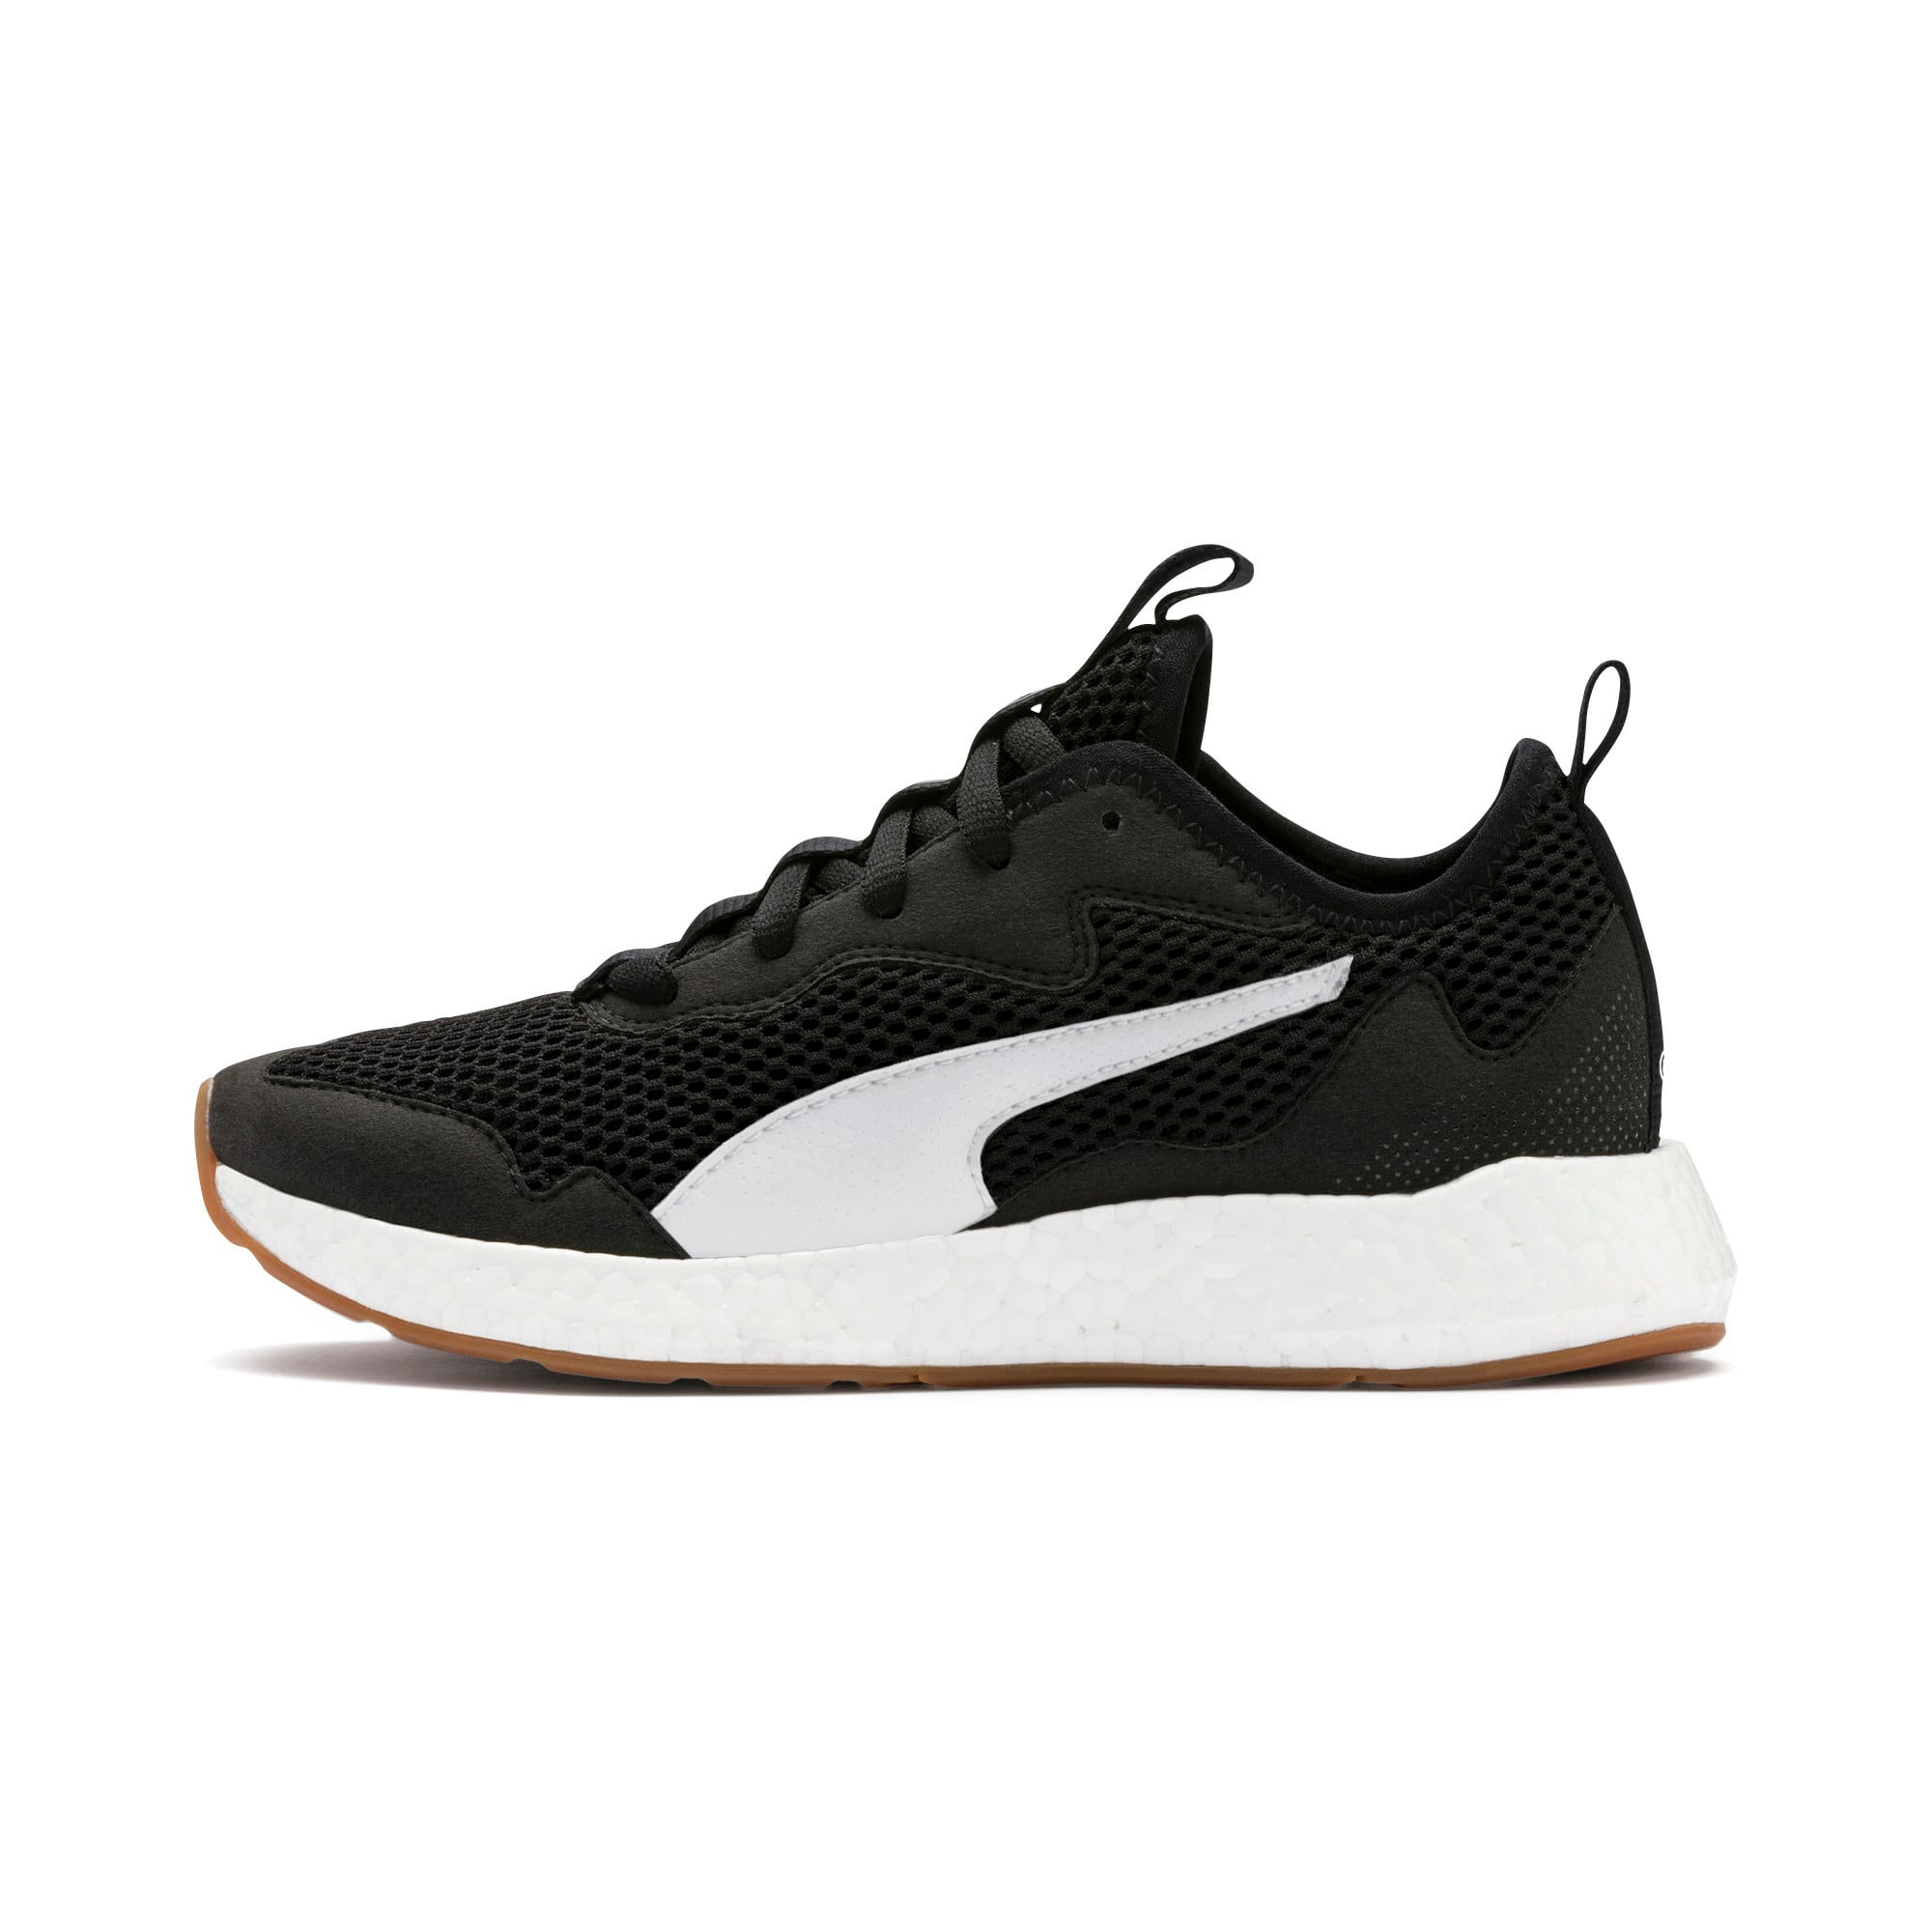 Thumbnail 1 of Chaussure de course NRGY Neko Skim Youth, Puma Black-Puma White, medium